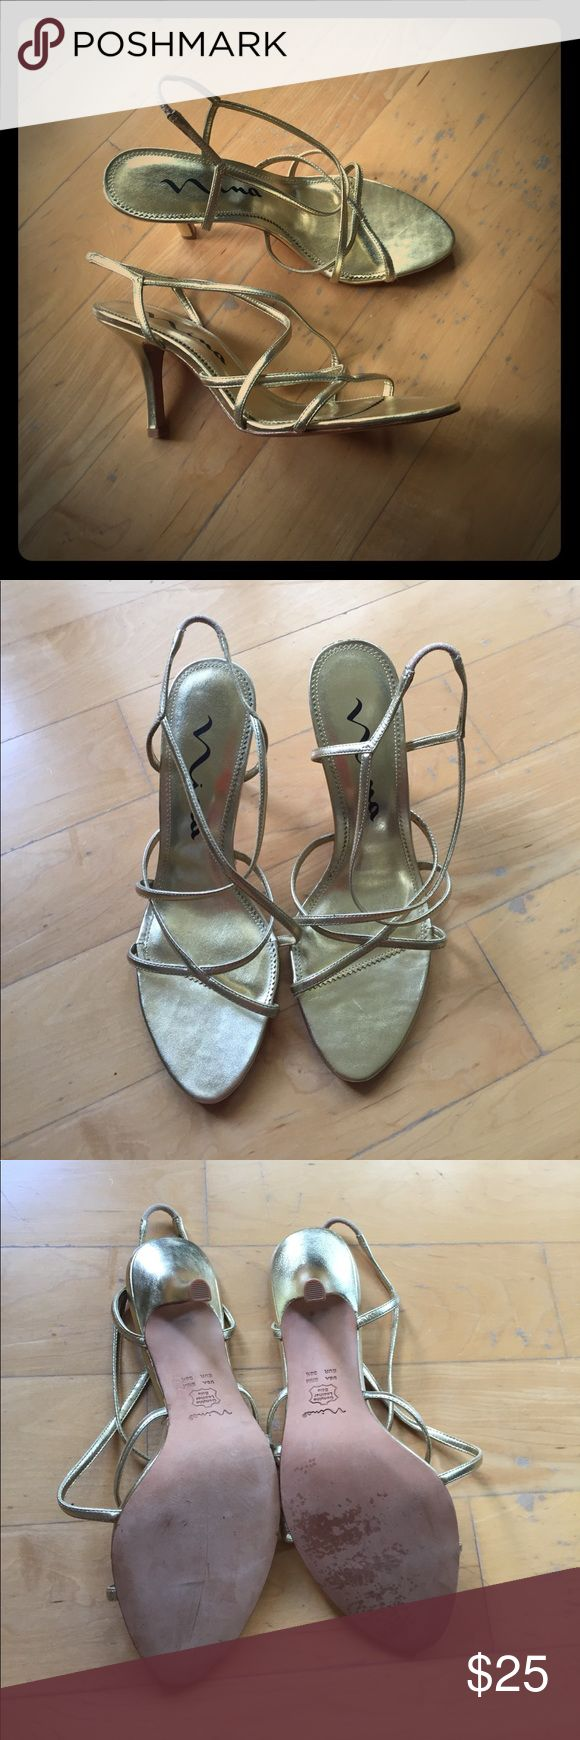 "Nina Gold Dress Sandal 8.5 Nina Gold Dress Sandal 8.5 retail $85 EUC only worn a couple times 3"" heel Nina Shoes Sandals"